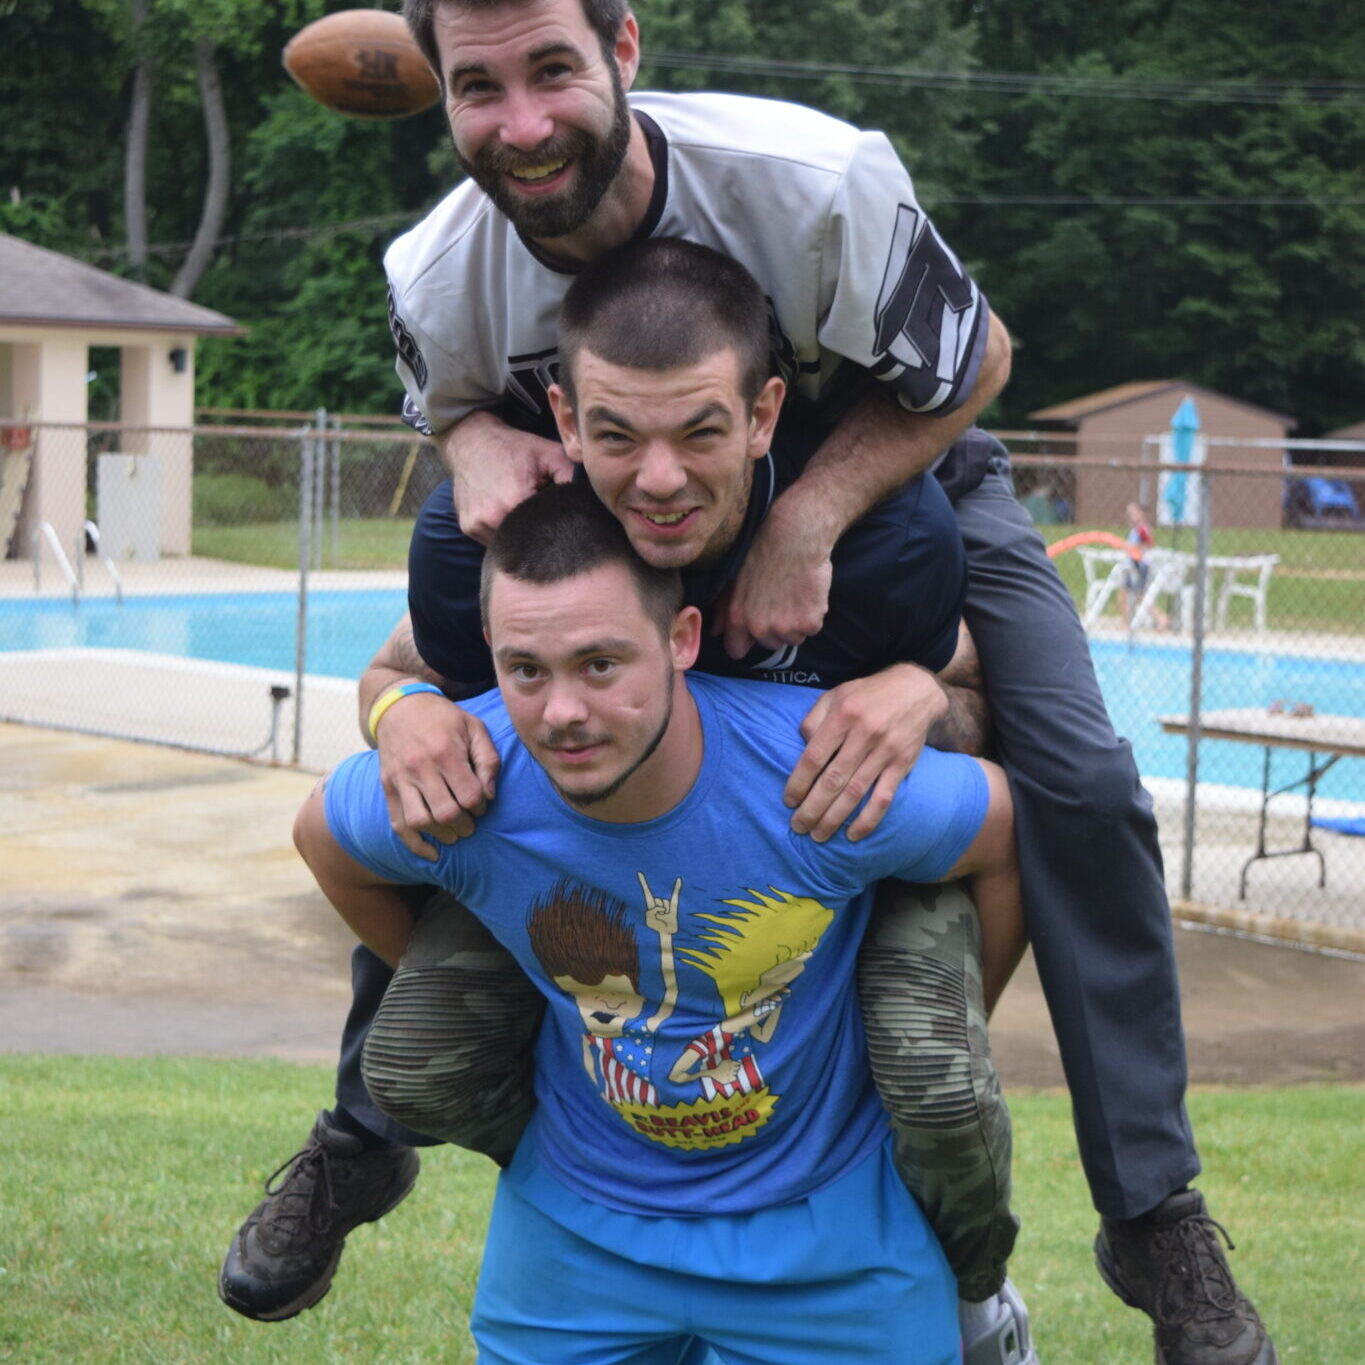 Three men, each one piggybacked on top of the other, pose smiling for a picture in front of a pool